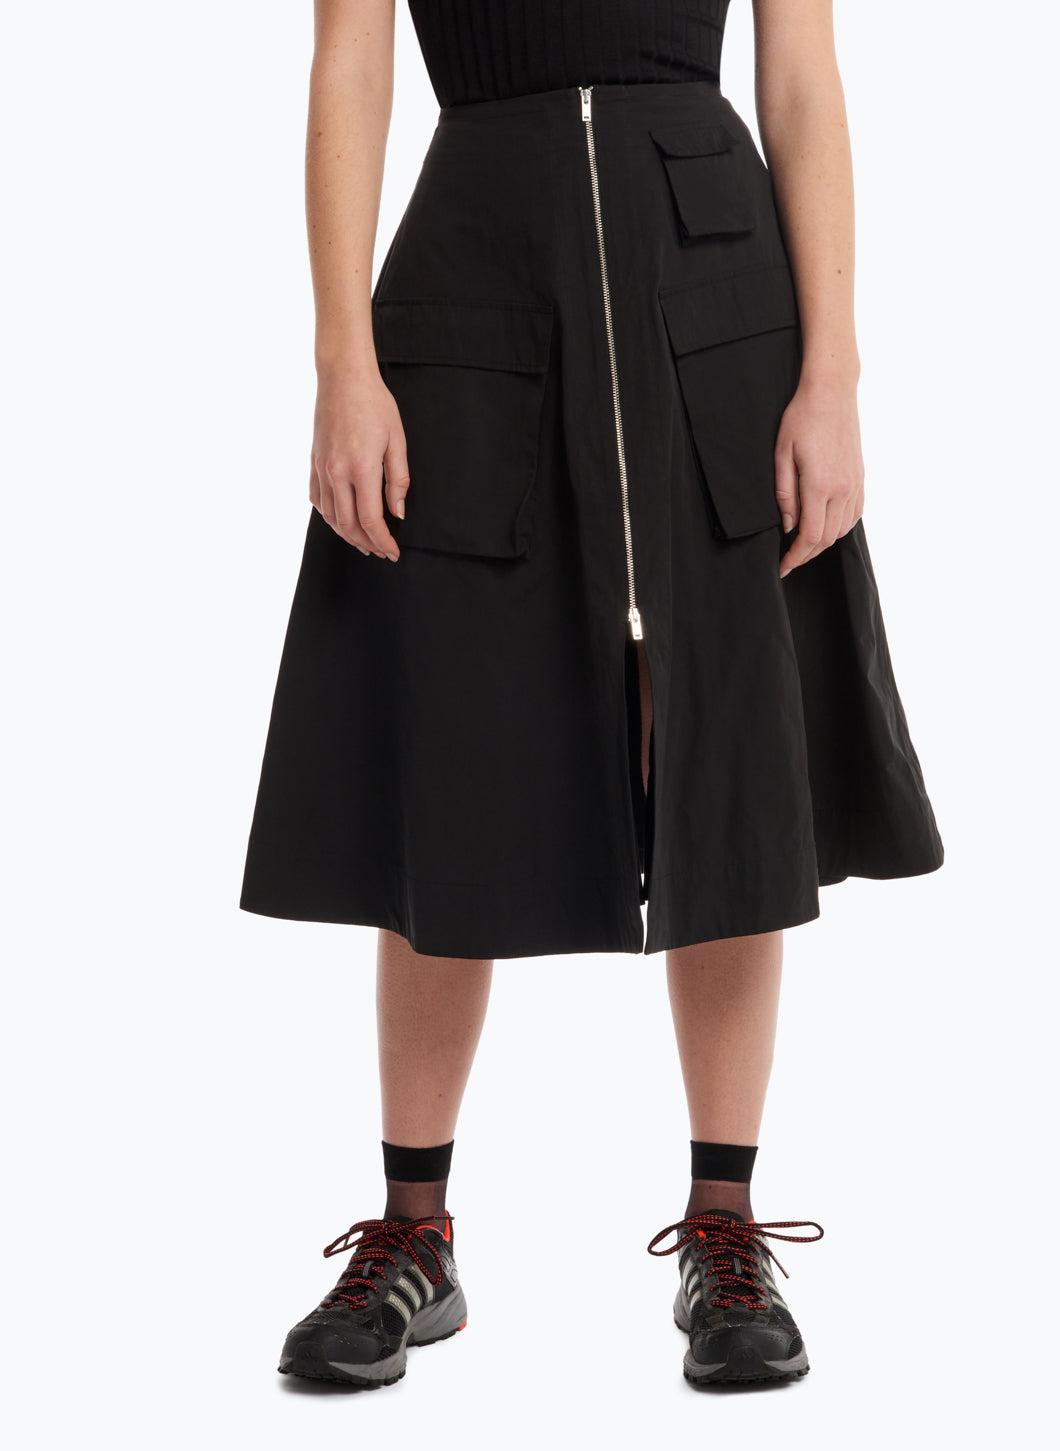 Safari-Skirt with Puffed Pockets in Black Microfiber Fabric